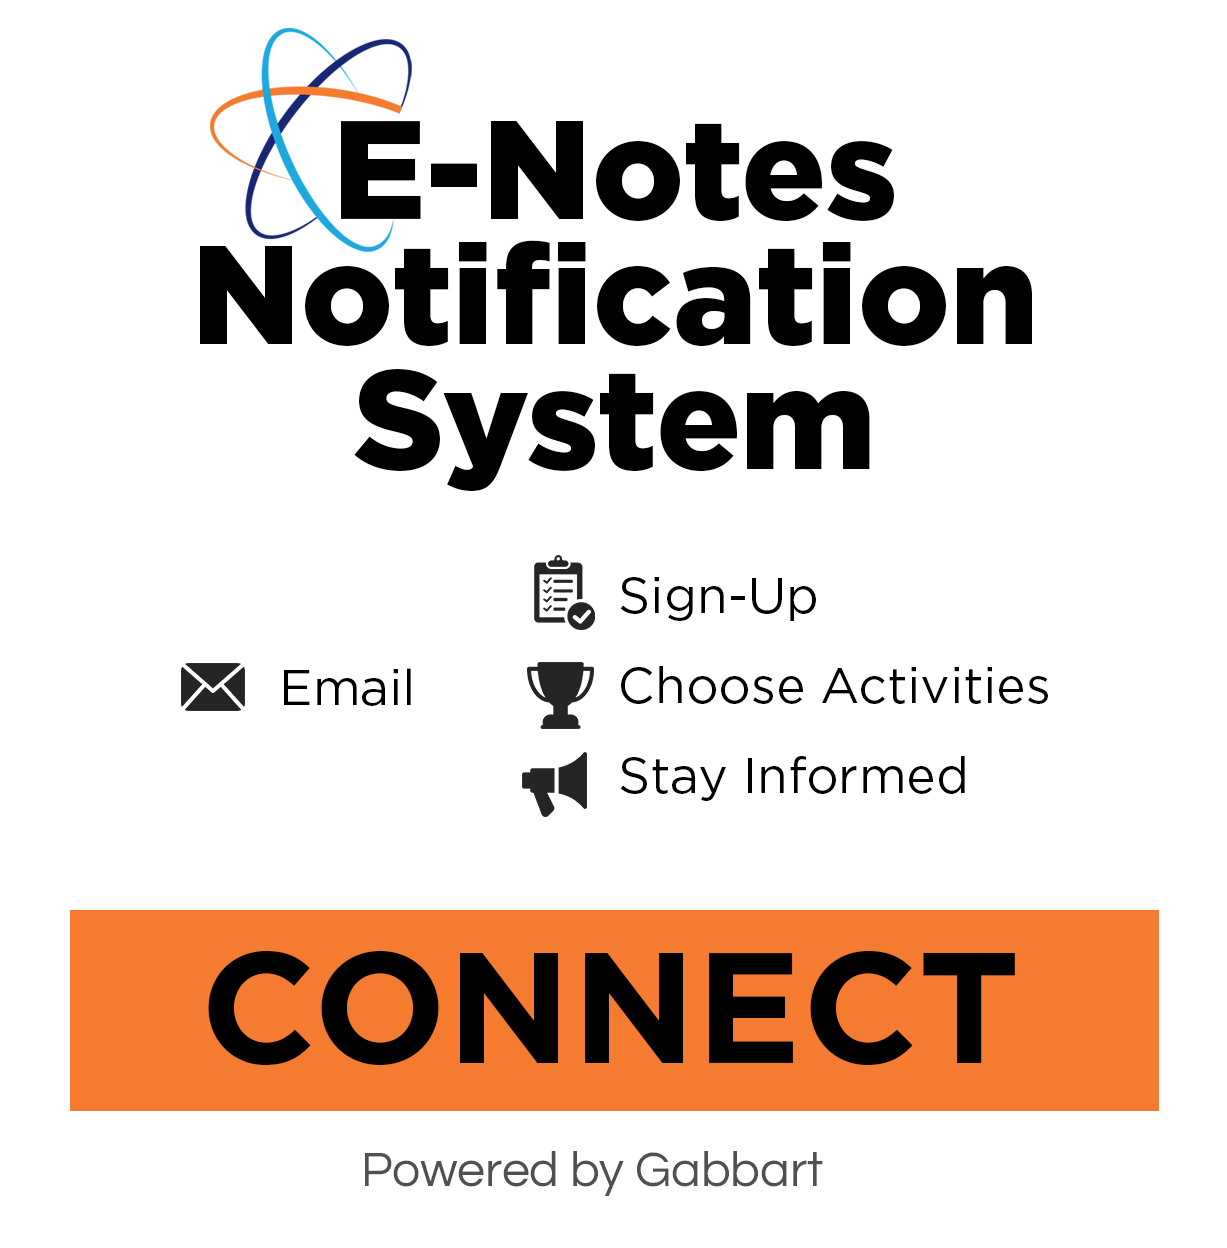 E-Note Notification System